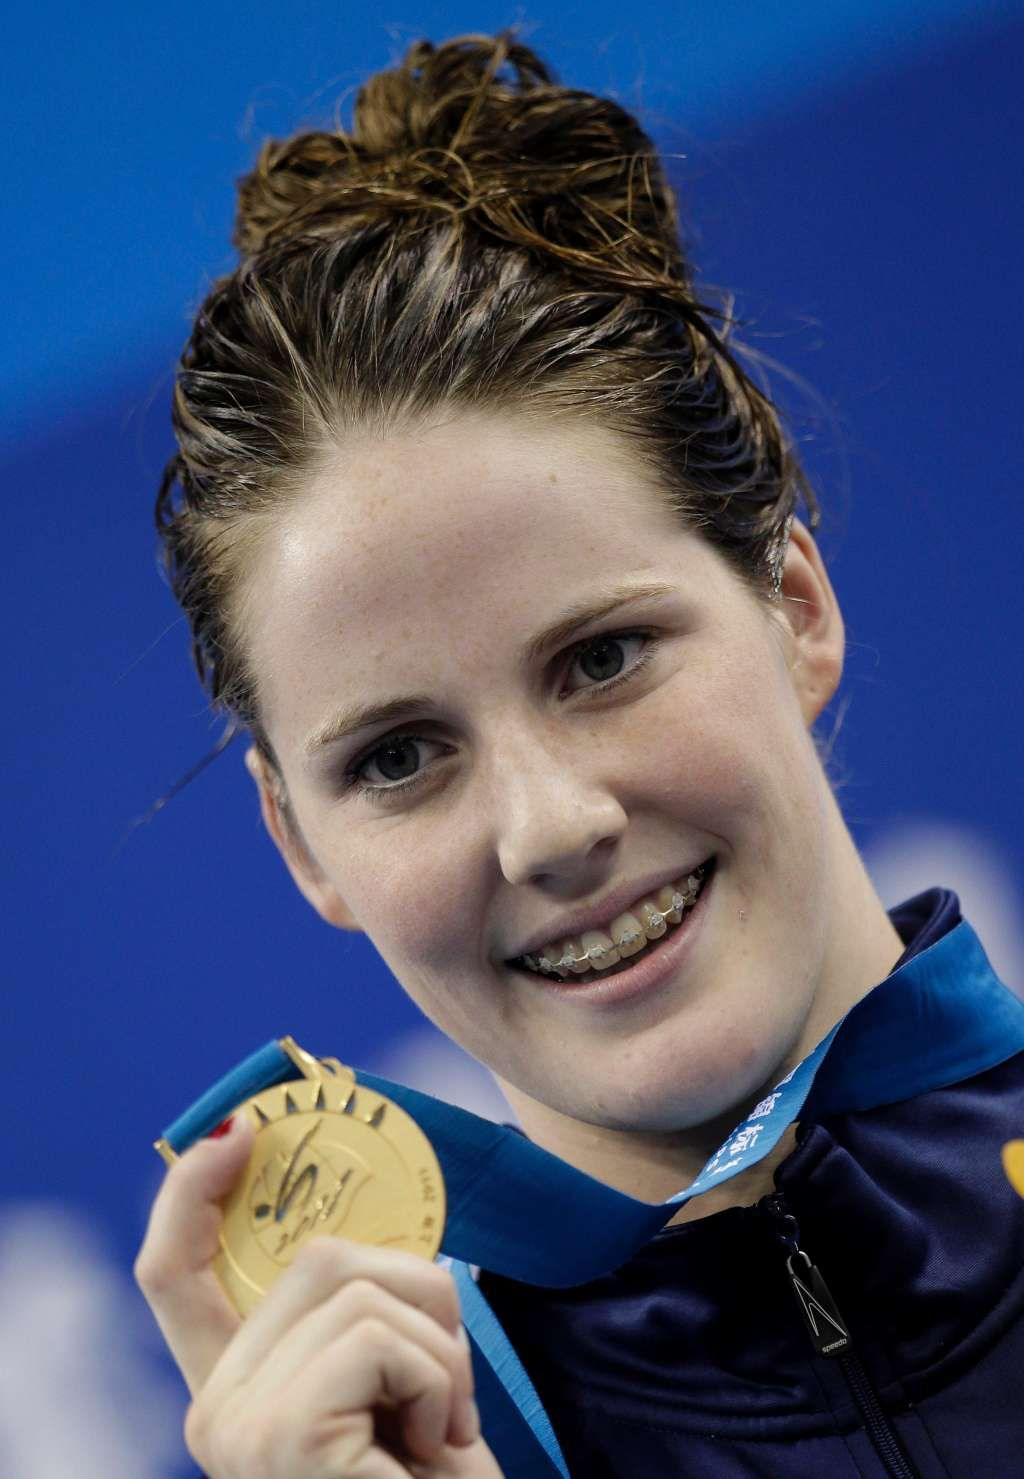 Missy Franklin Shows Off Her Ceramic Braces While Winning